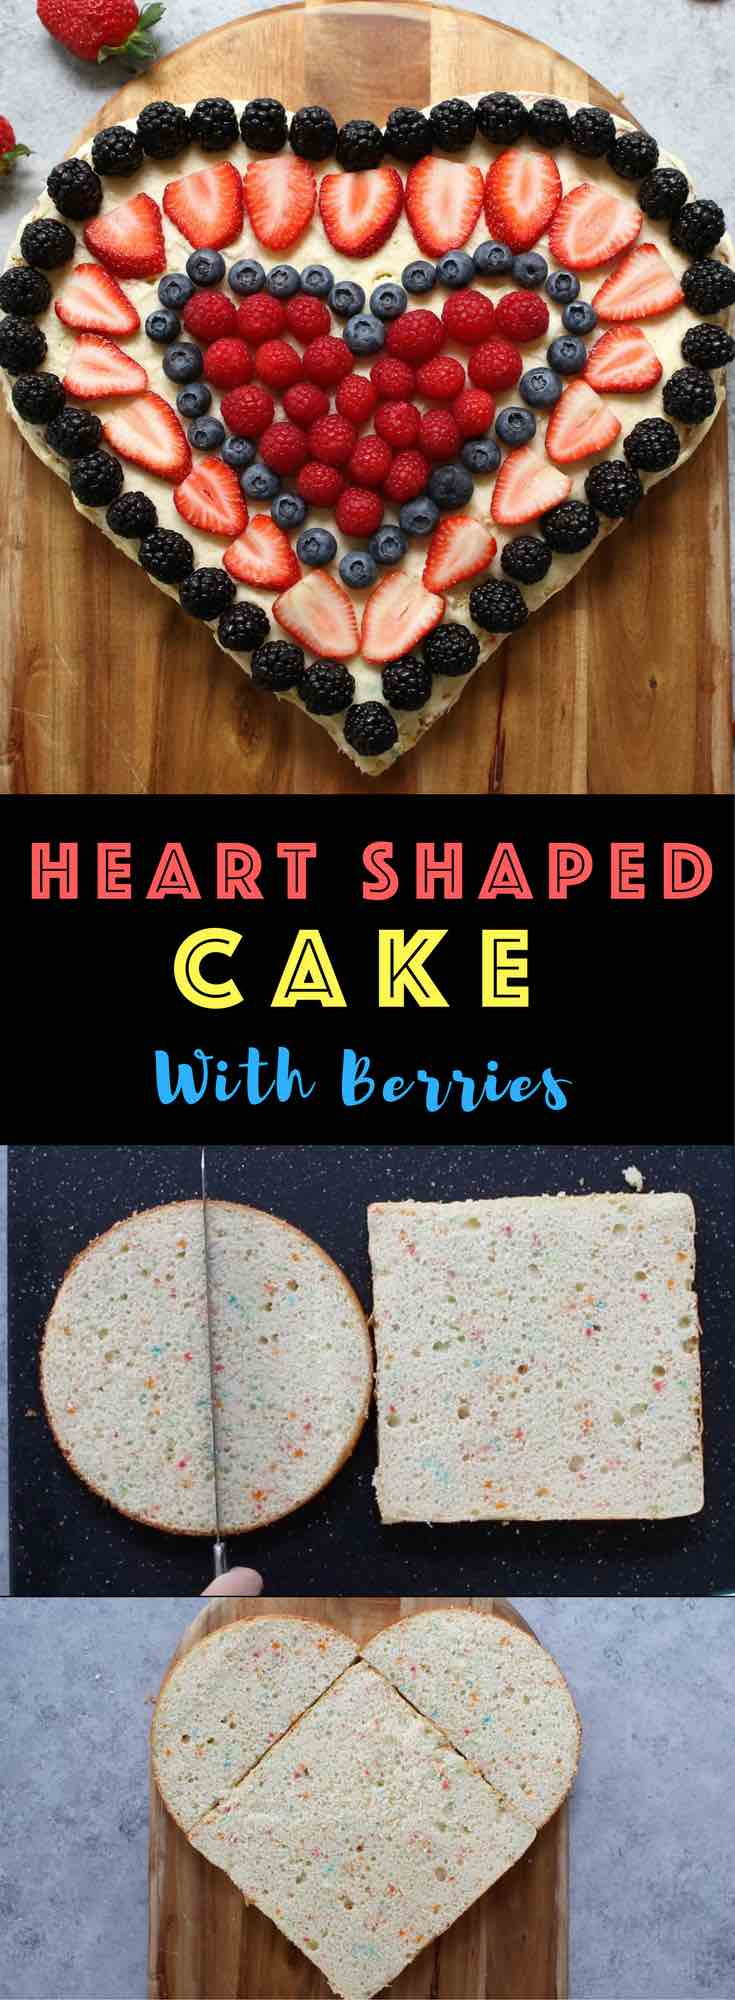 Super Easy Heart Shaped Cake– made using a square and round pan, easiest trick ever! One square cake and one round cake magically turn into a beautiful heart-shaped cake, with only a few ingredients: cake mix, icing and your favorite berries. Great for birthday parties, Valentine's Day or Mother's Day! Party food, party dessert recipes. Video recipe